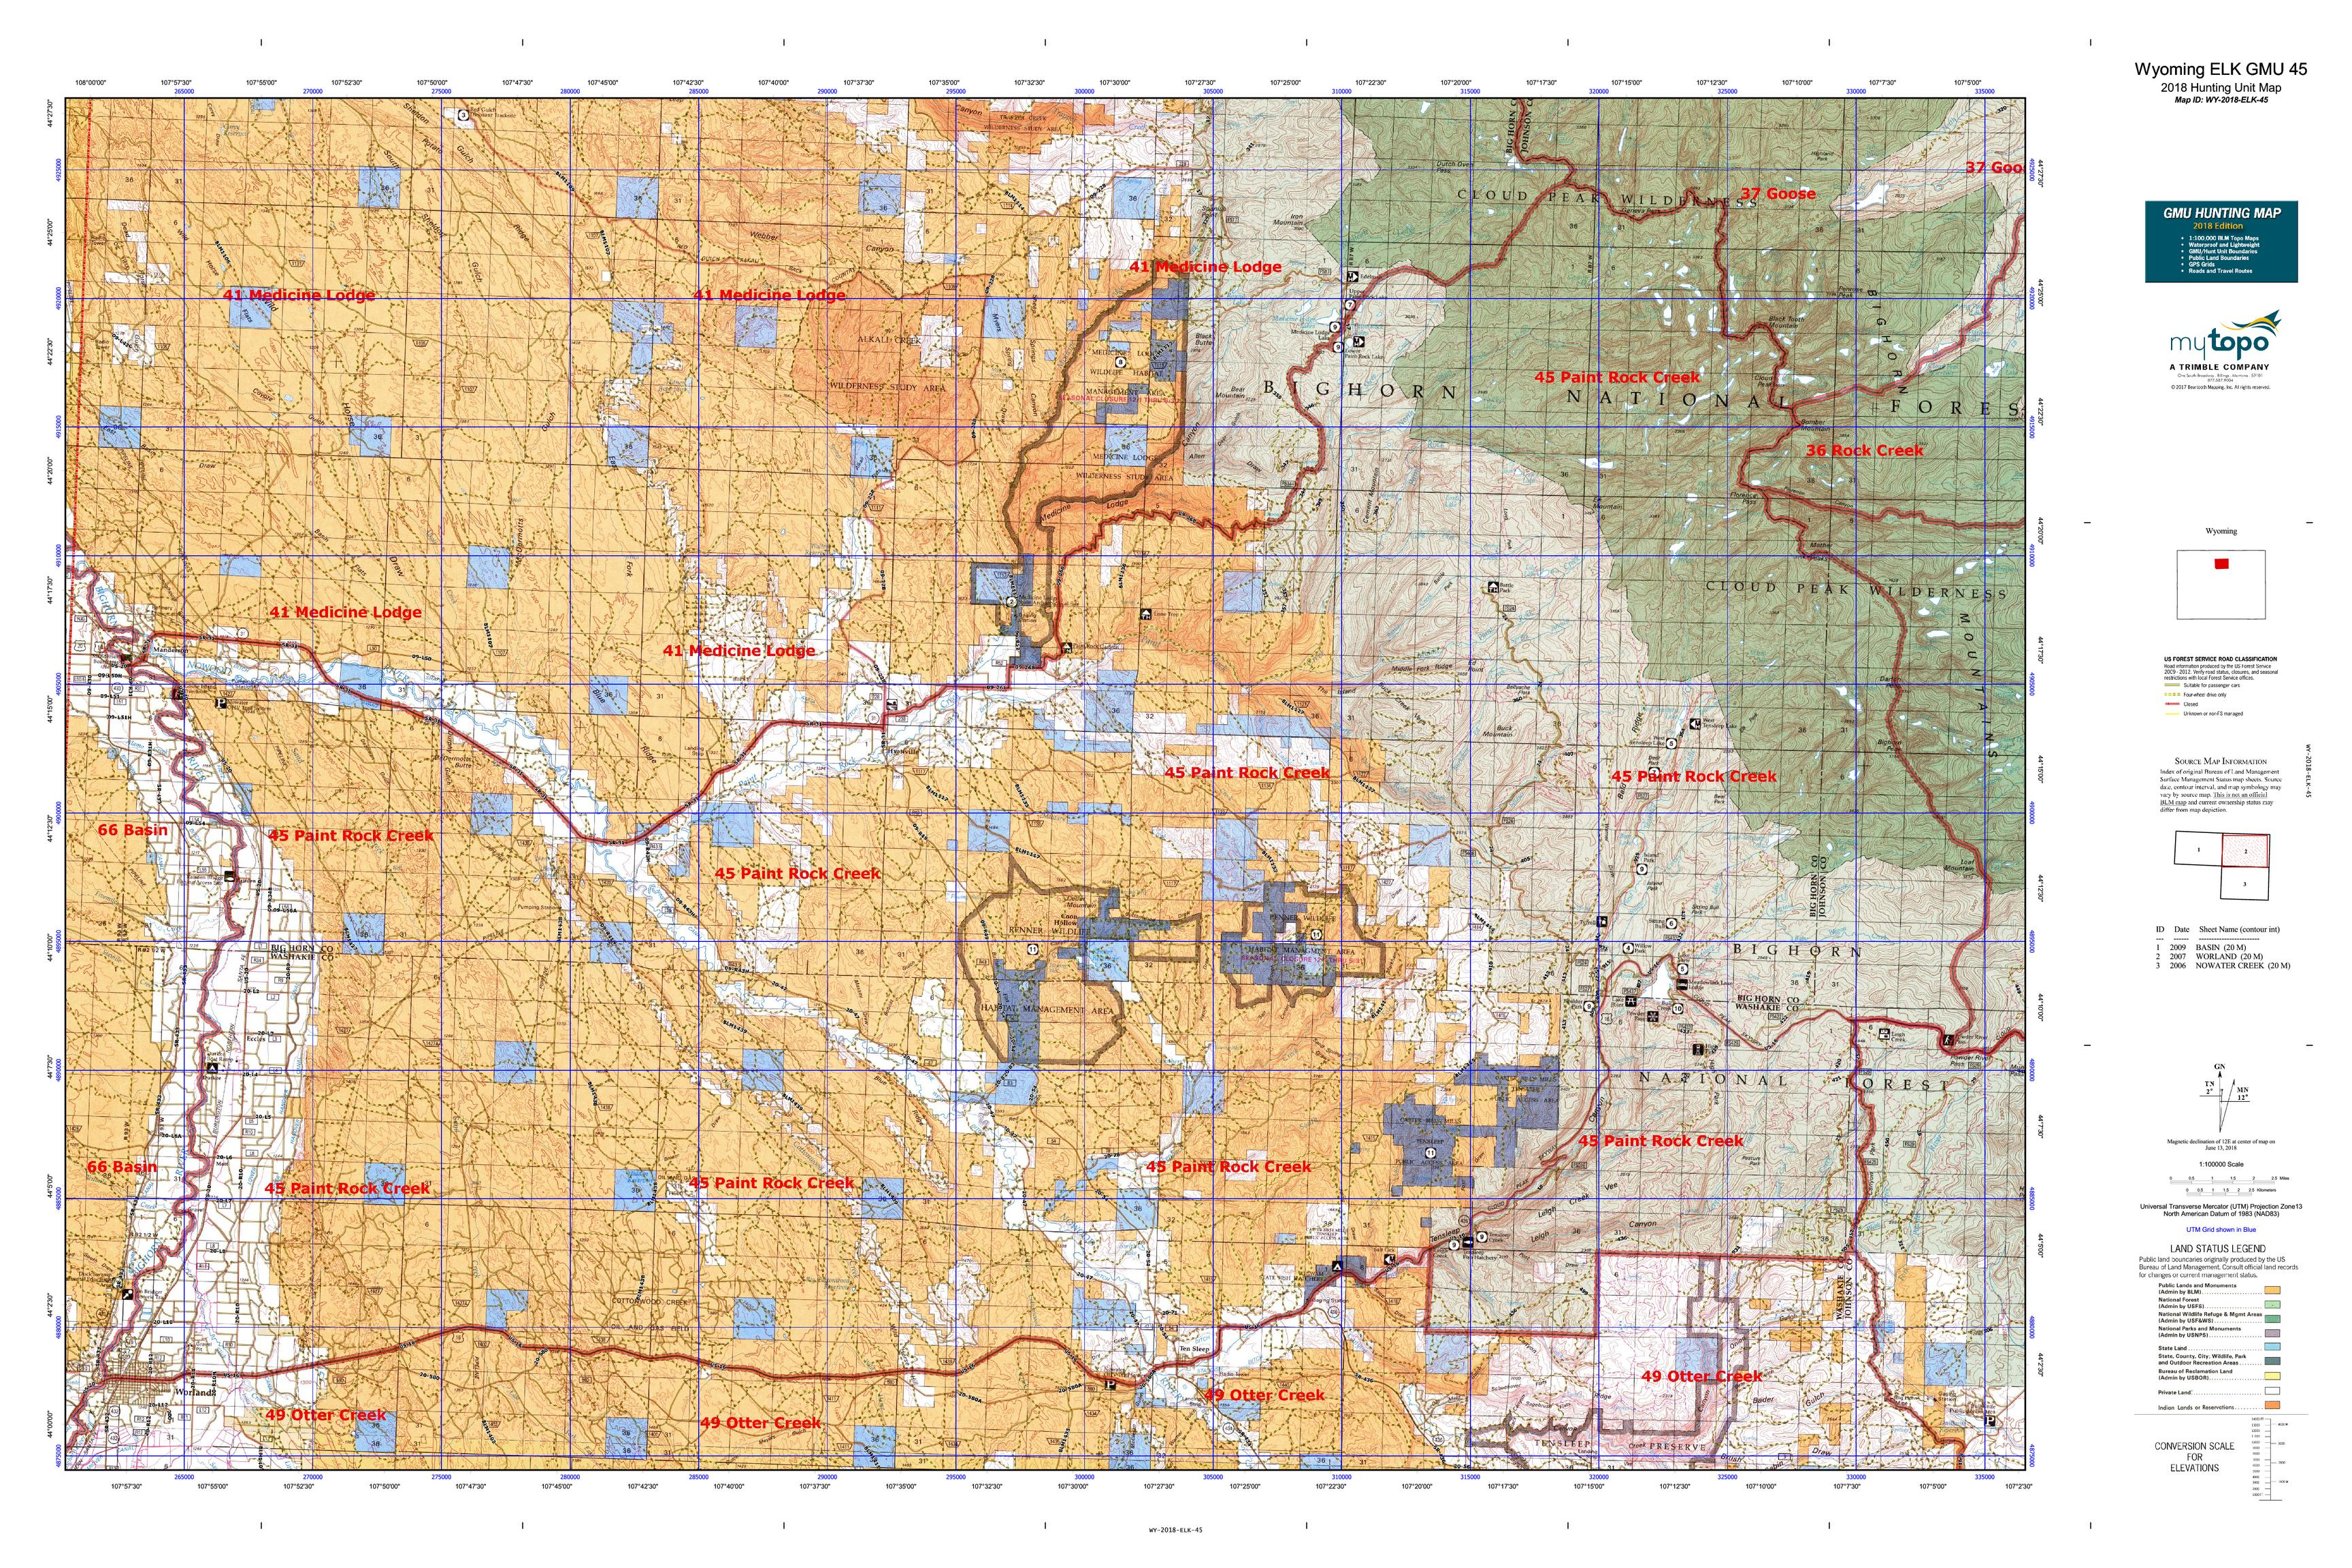 Wyoming ELK GMU 45 Map | MyTopo